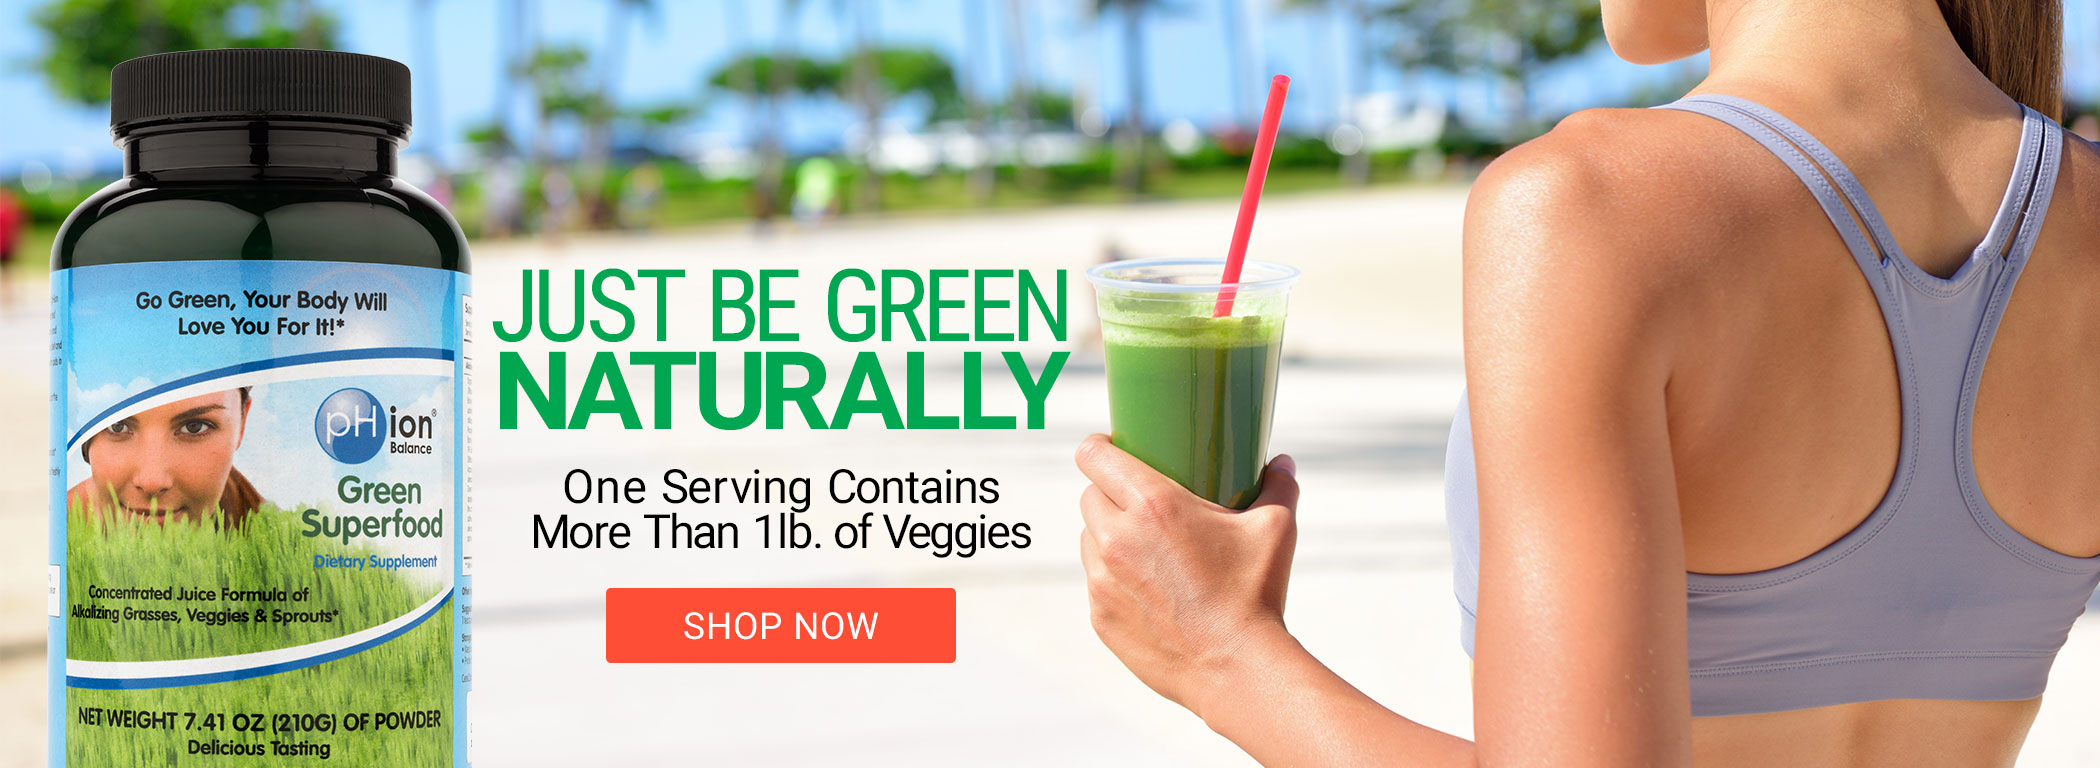 Just Be Green — Naturally!